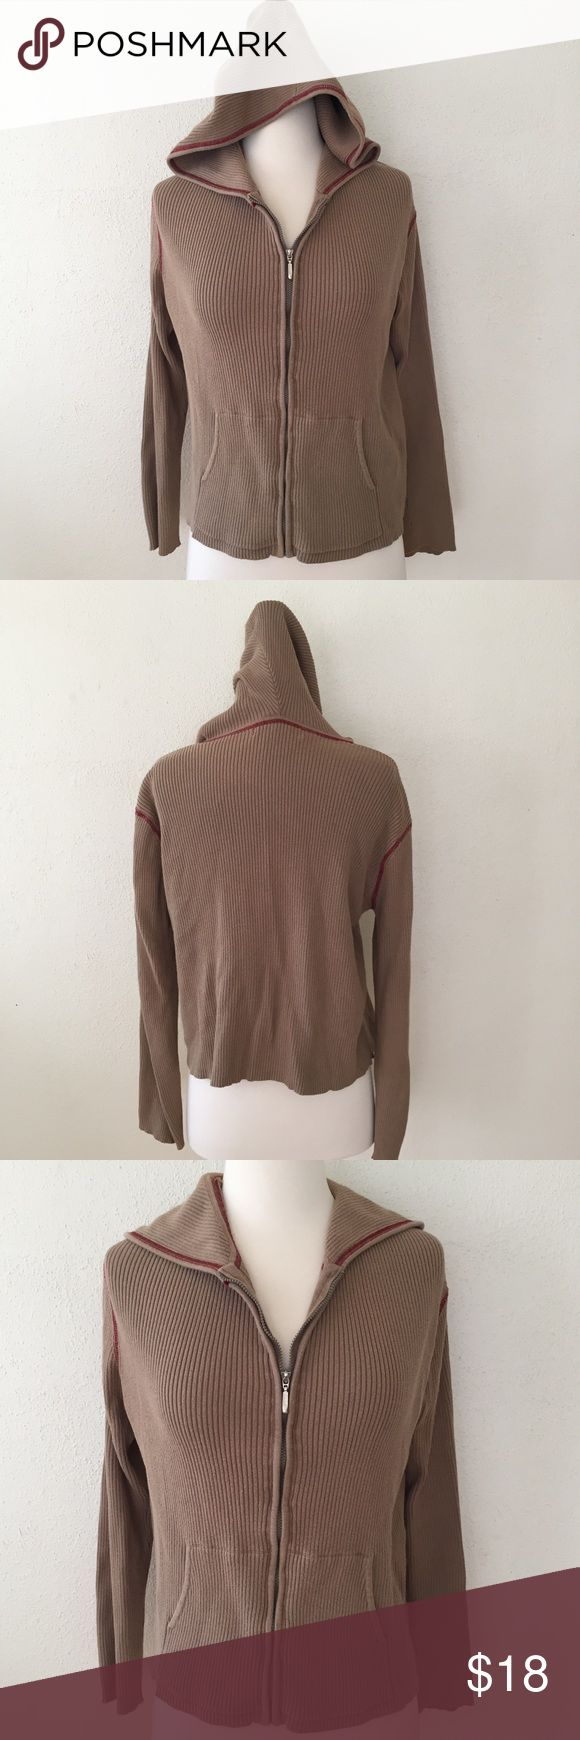 Gloria Vanderbilt cotton hoodie Like new Gloria Vanderbilt hooded jacket in camel colored ribbed cotton with red trim. Sweet and cozy jacket with 2 front pockets and a full silver toned zipper. 100% cotton. Size L but runs small. Gloria Vanderbilt Tops Sweatshirts & Hoodies